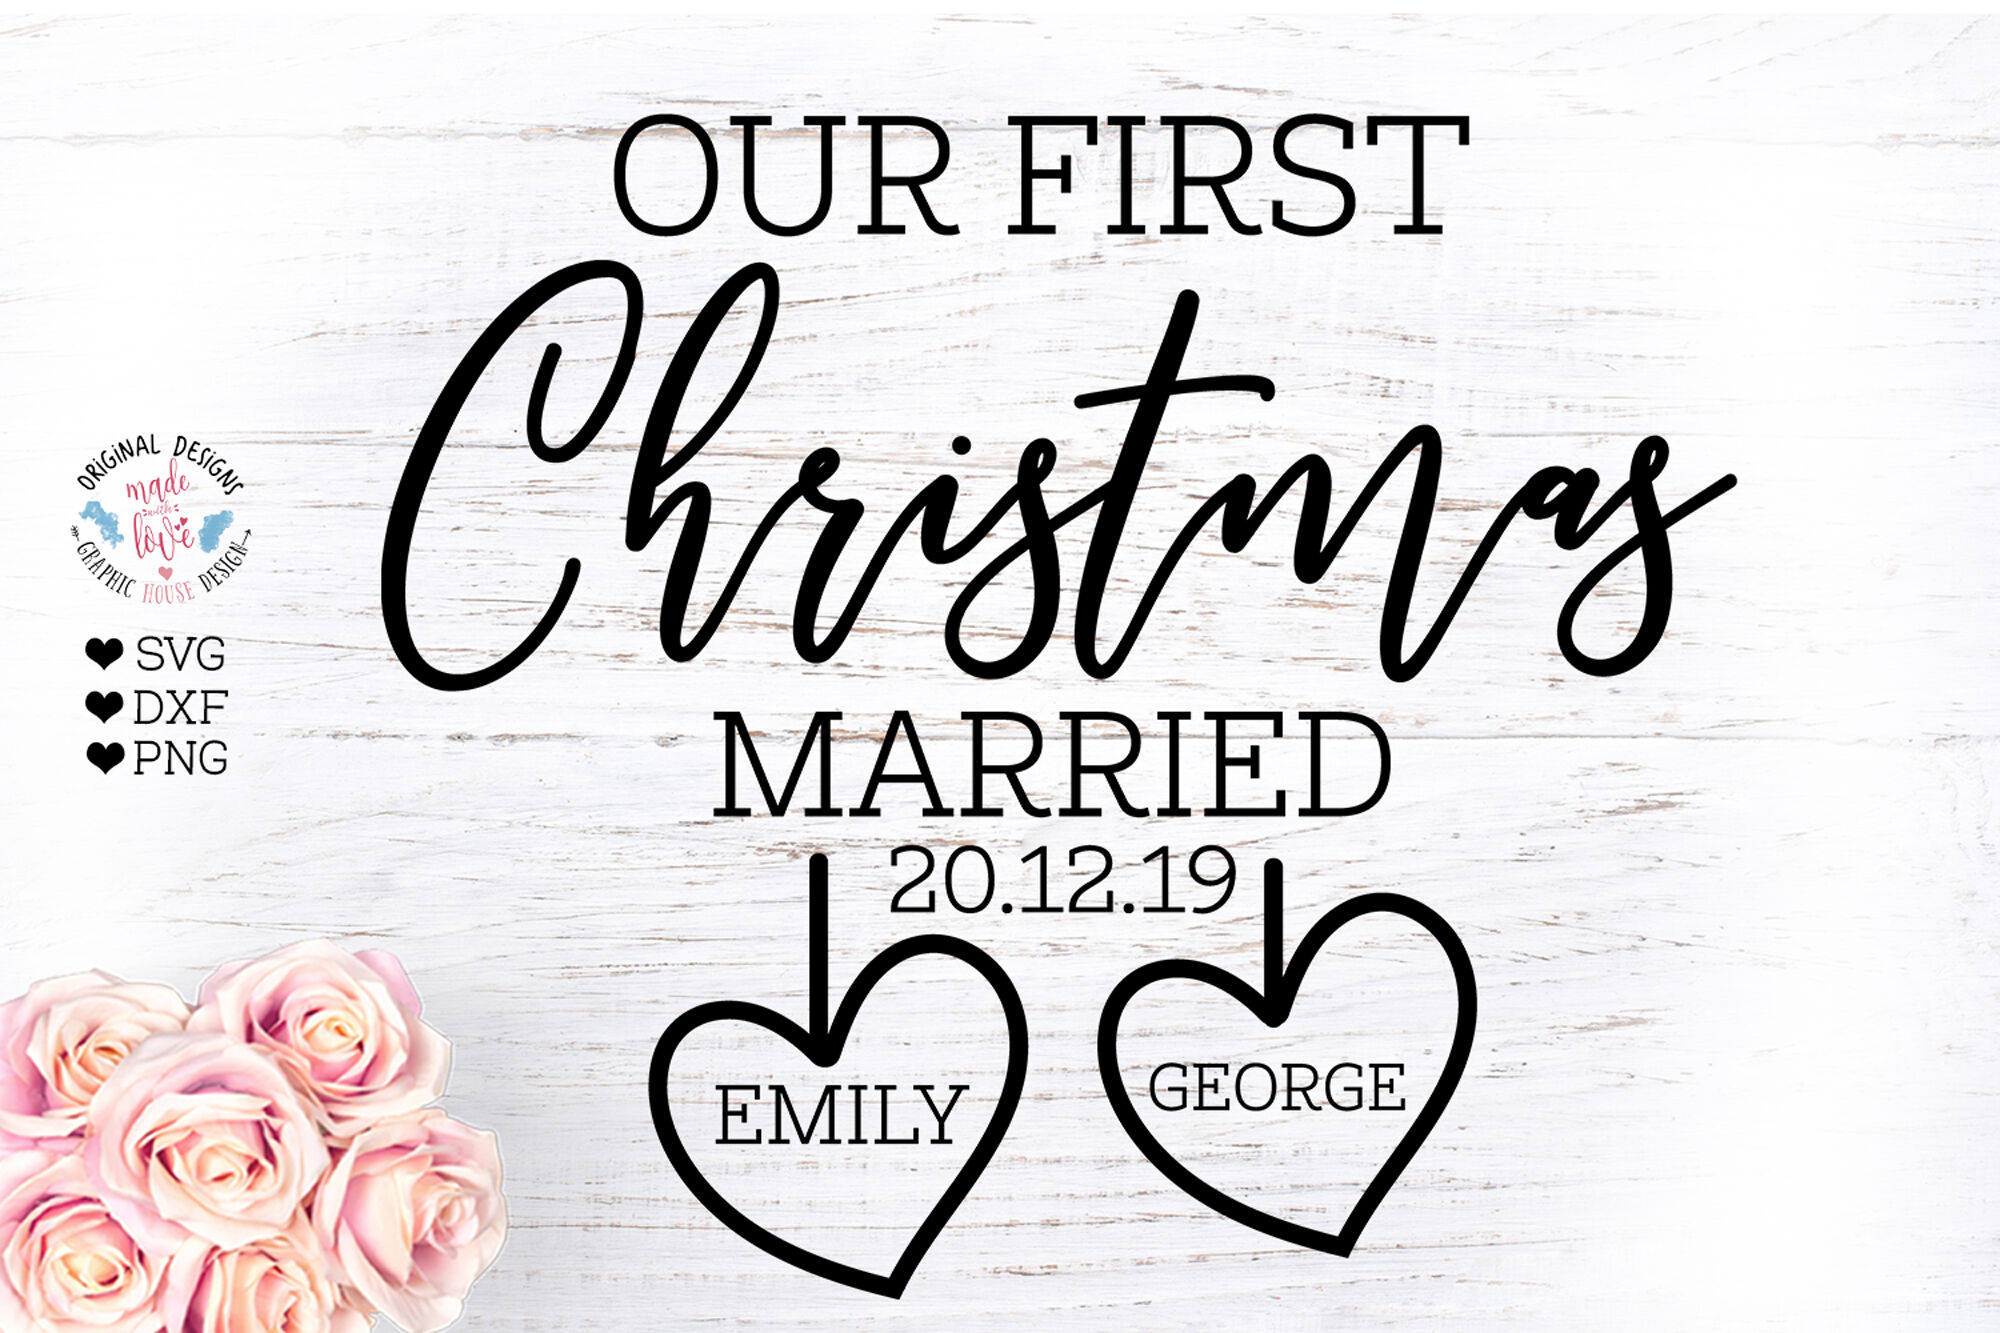 First Christmas In Our New Home Svg.Our First Christmas Married Christmas Home Decor Cut File